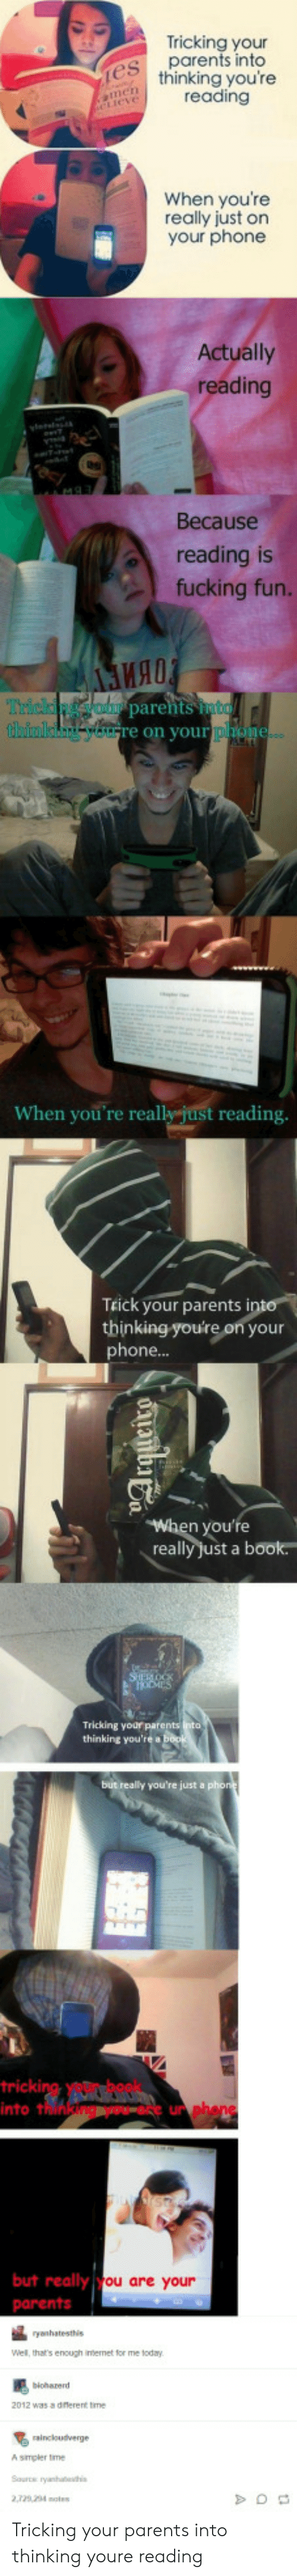 Tricking: Tricking your  parents into  thinking you're  reading  When youre  really just on  your phone  Actually  reading  Because  reading is  fucking fun.  ия!  parehts to  rich  on your  When you're really just reading  TEick your parents i  thinking-you're on your  phone...  you're  really Just a book  thinking you're a  tricki  into t  un  but really  ou are your  Well, thats enough irmernet for me today  2 was a diflerent time  Asimpler time  2,729 24 otes Tricking your parents into thinking youre reading